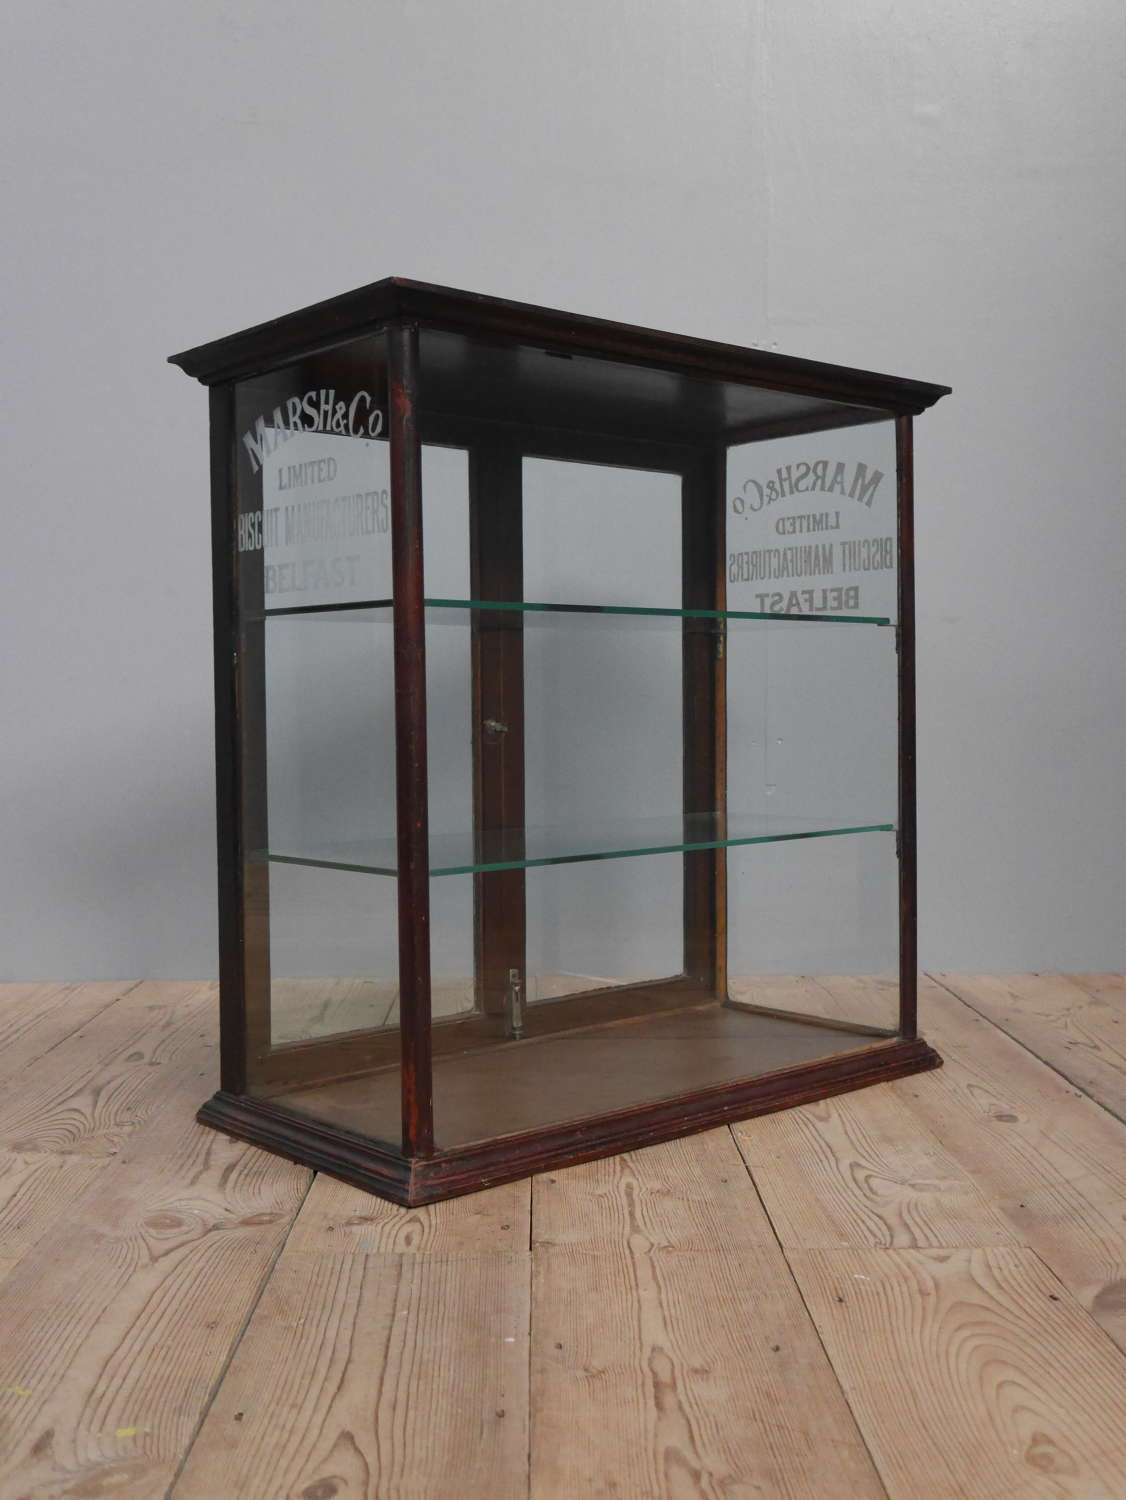 Marsh & Co Biscuits Shop Display Cabinet